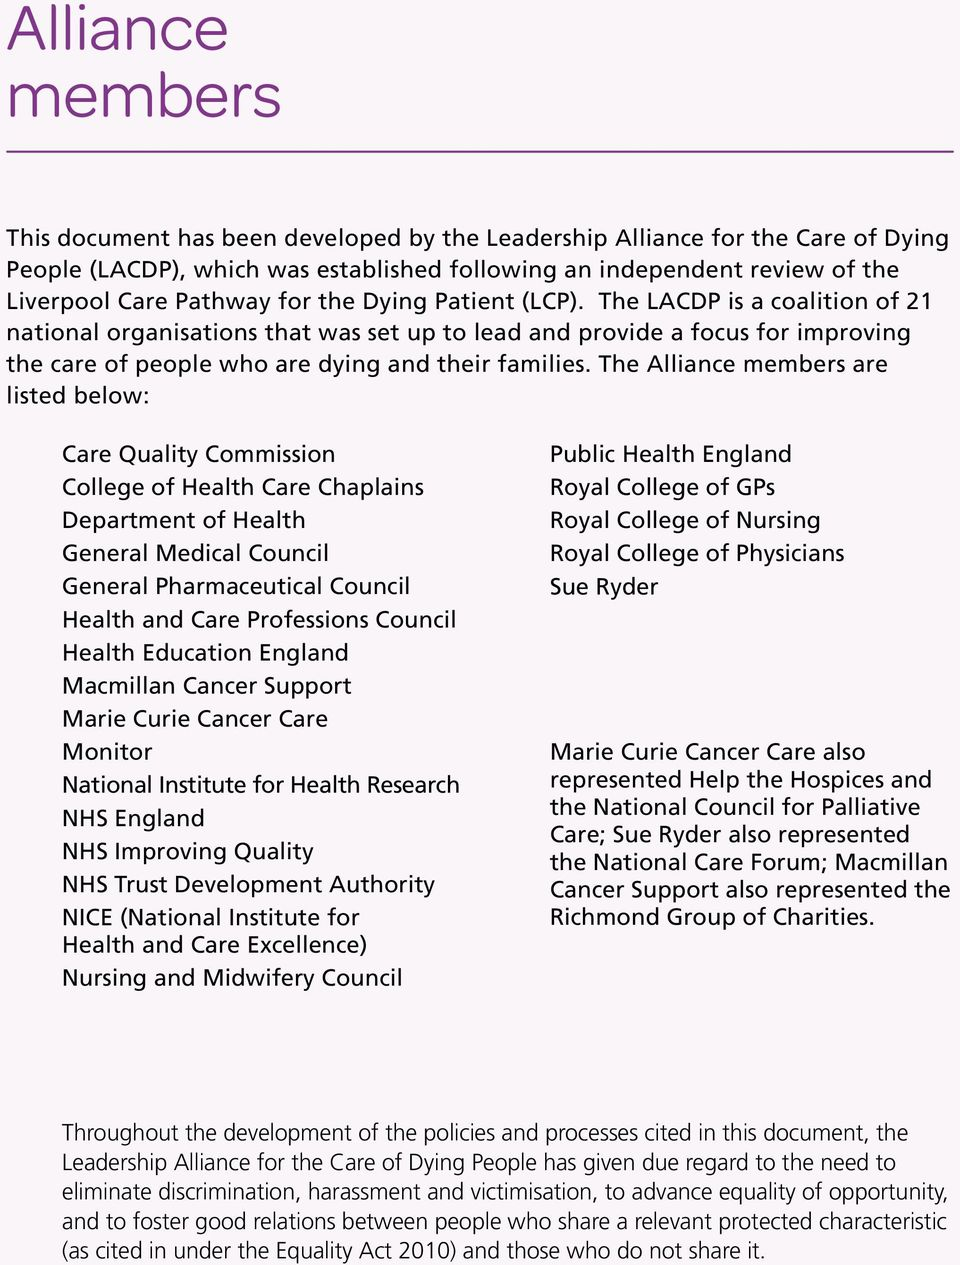 The Alliance members are listed below: Care Quality Commission College of Health Care Chaplains Department of Health General Medical Council General Pharmaceutical Council Health and Care Professions